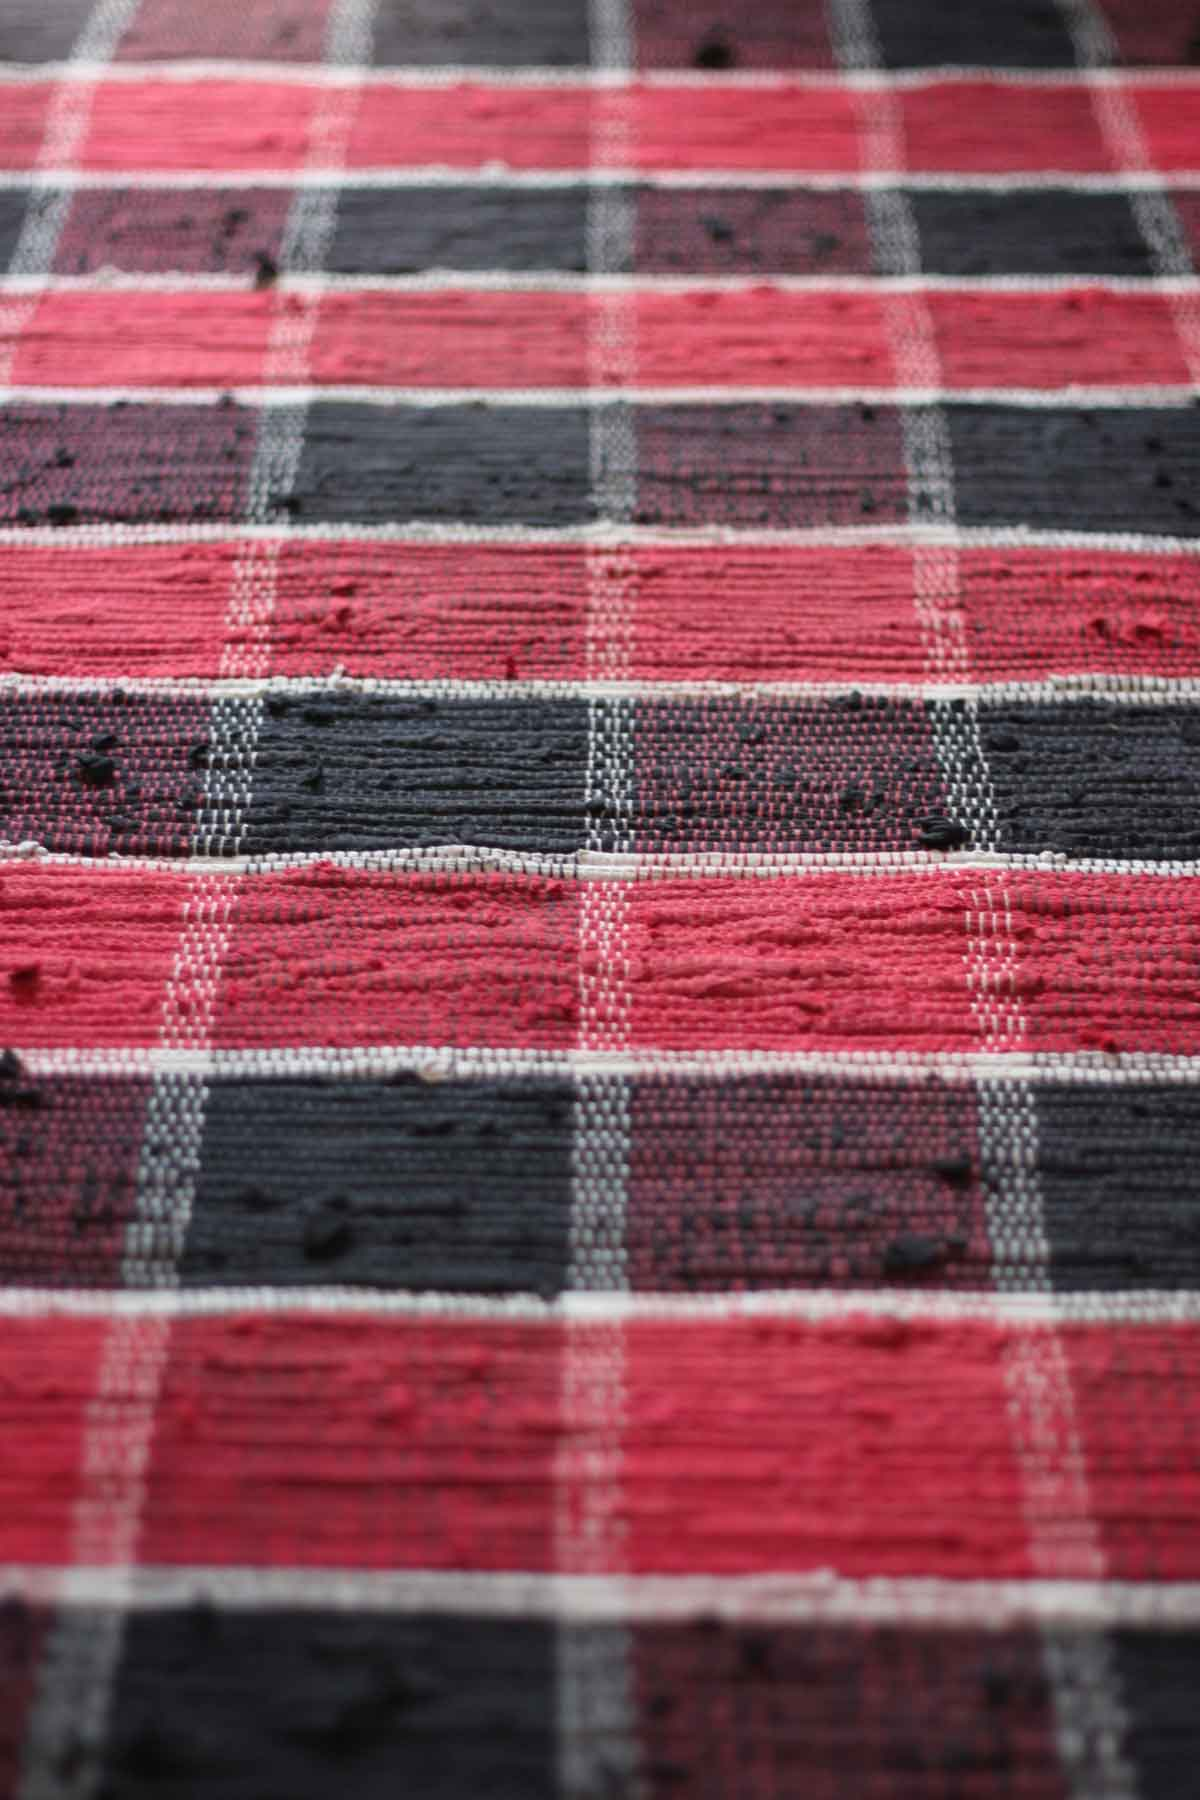 60 x 120 Tablecloth Cool Design Examples for Your Dining Room | Table Covers Depot